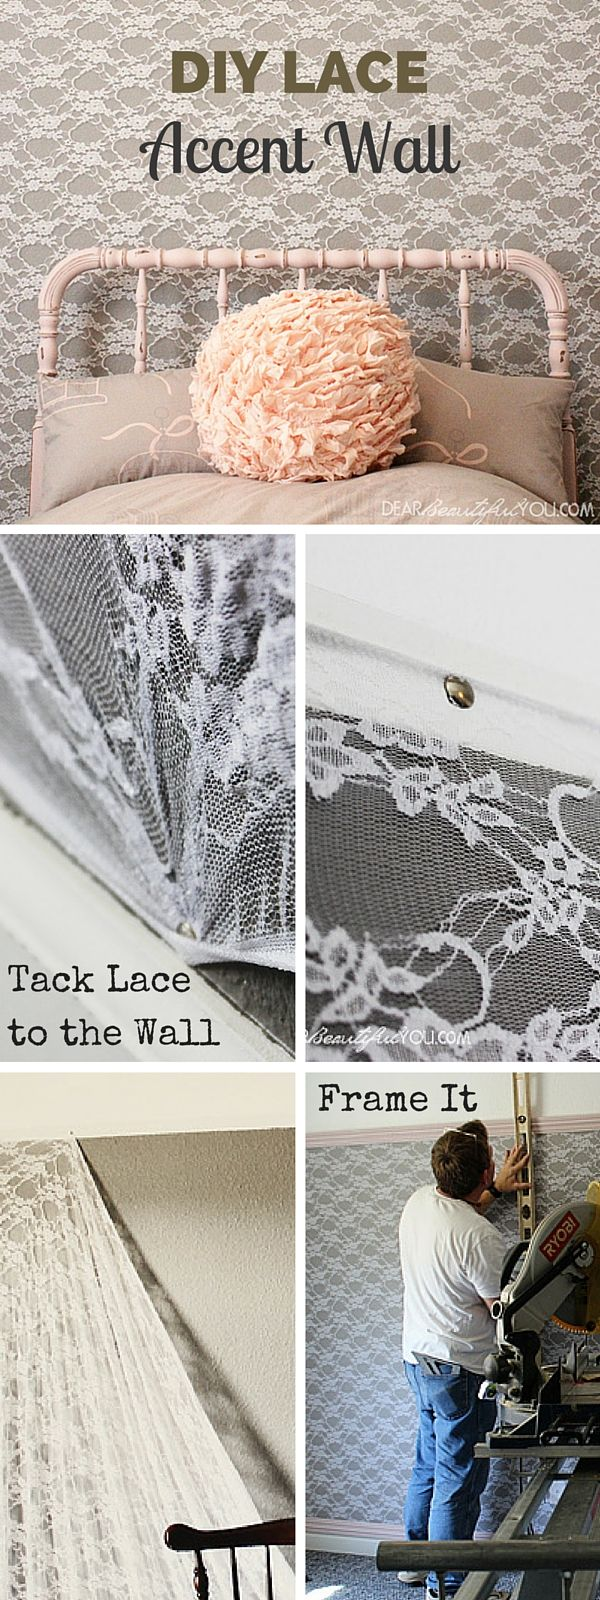 Check out the tutorial: #DIY Lace Accent Wall #crafts #decor